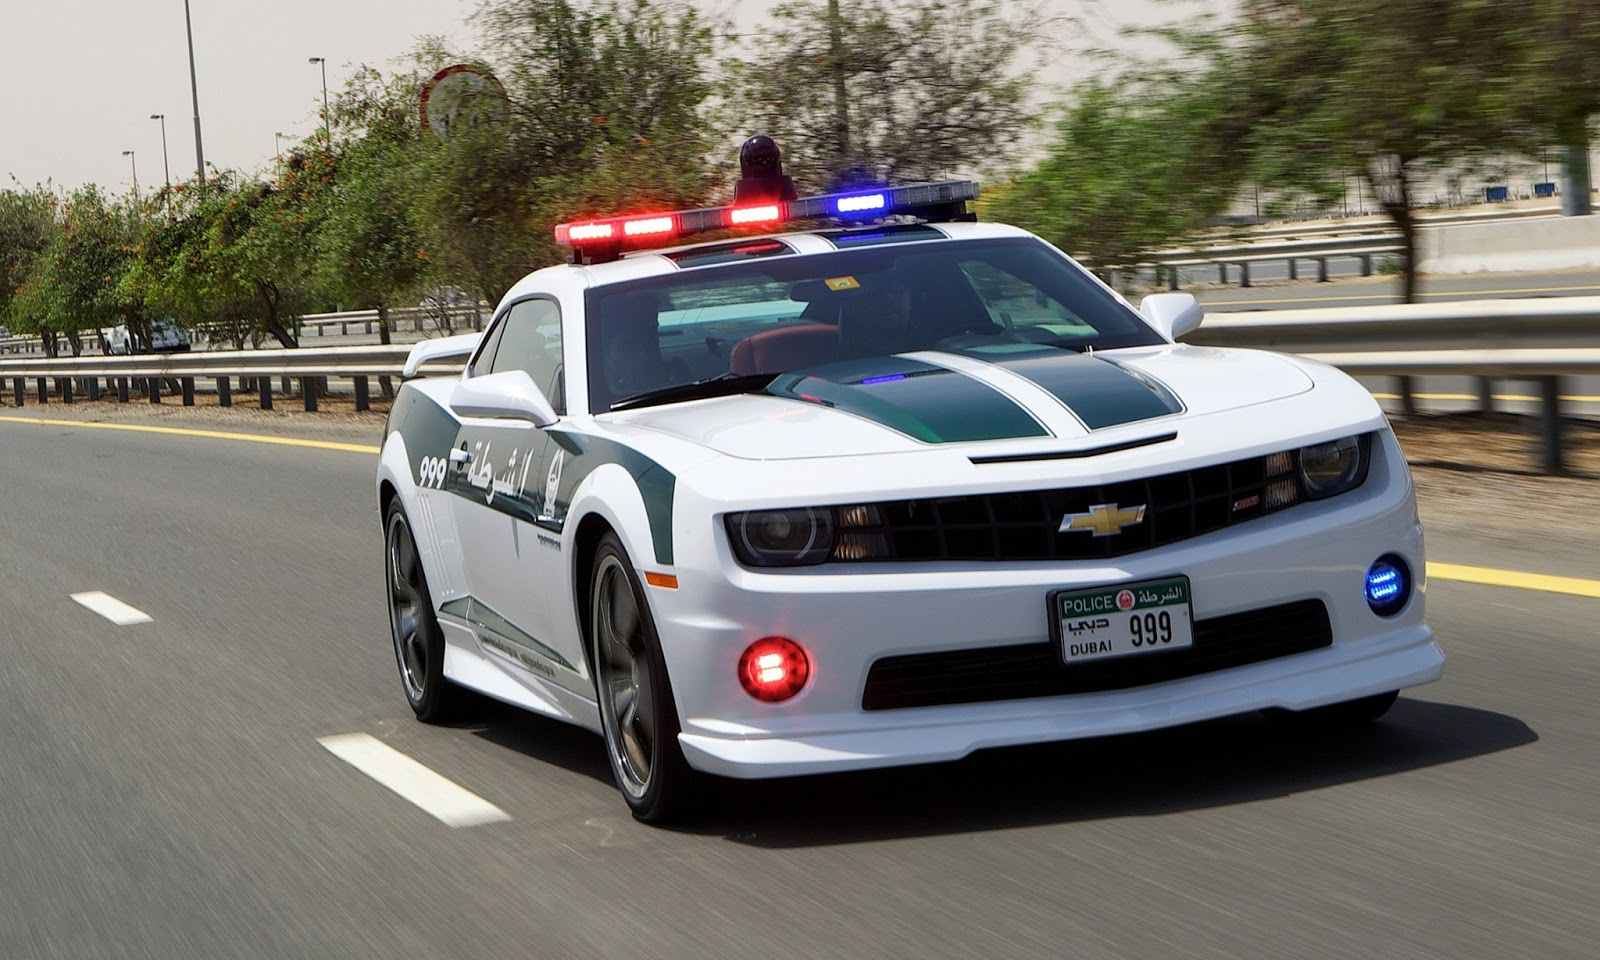 Dubai Police Cars Hd Wallpapers High Definition Free